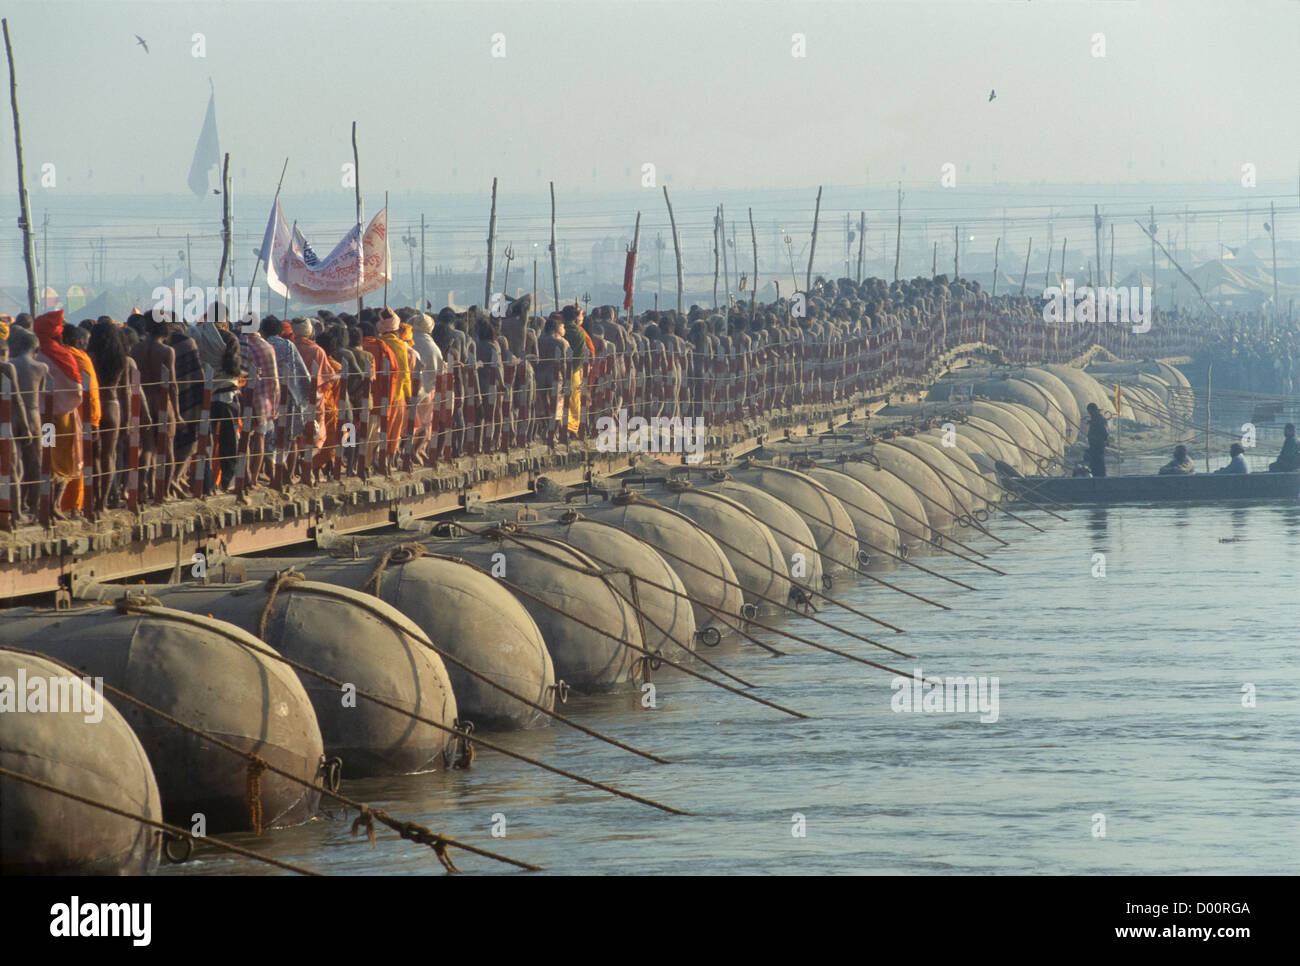 Naga sadhus from the Juna Akhara in procession across a pontoon bridge over the River Ganges, on the Basant Panchmi - Stock Image